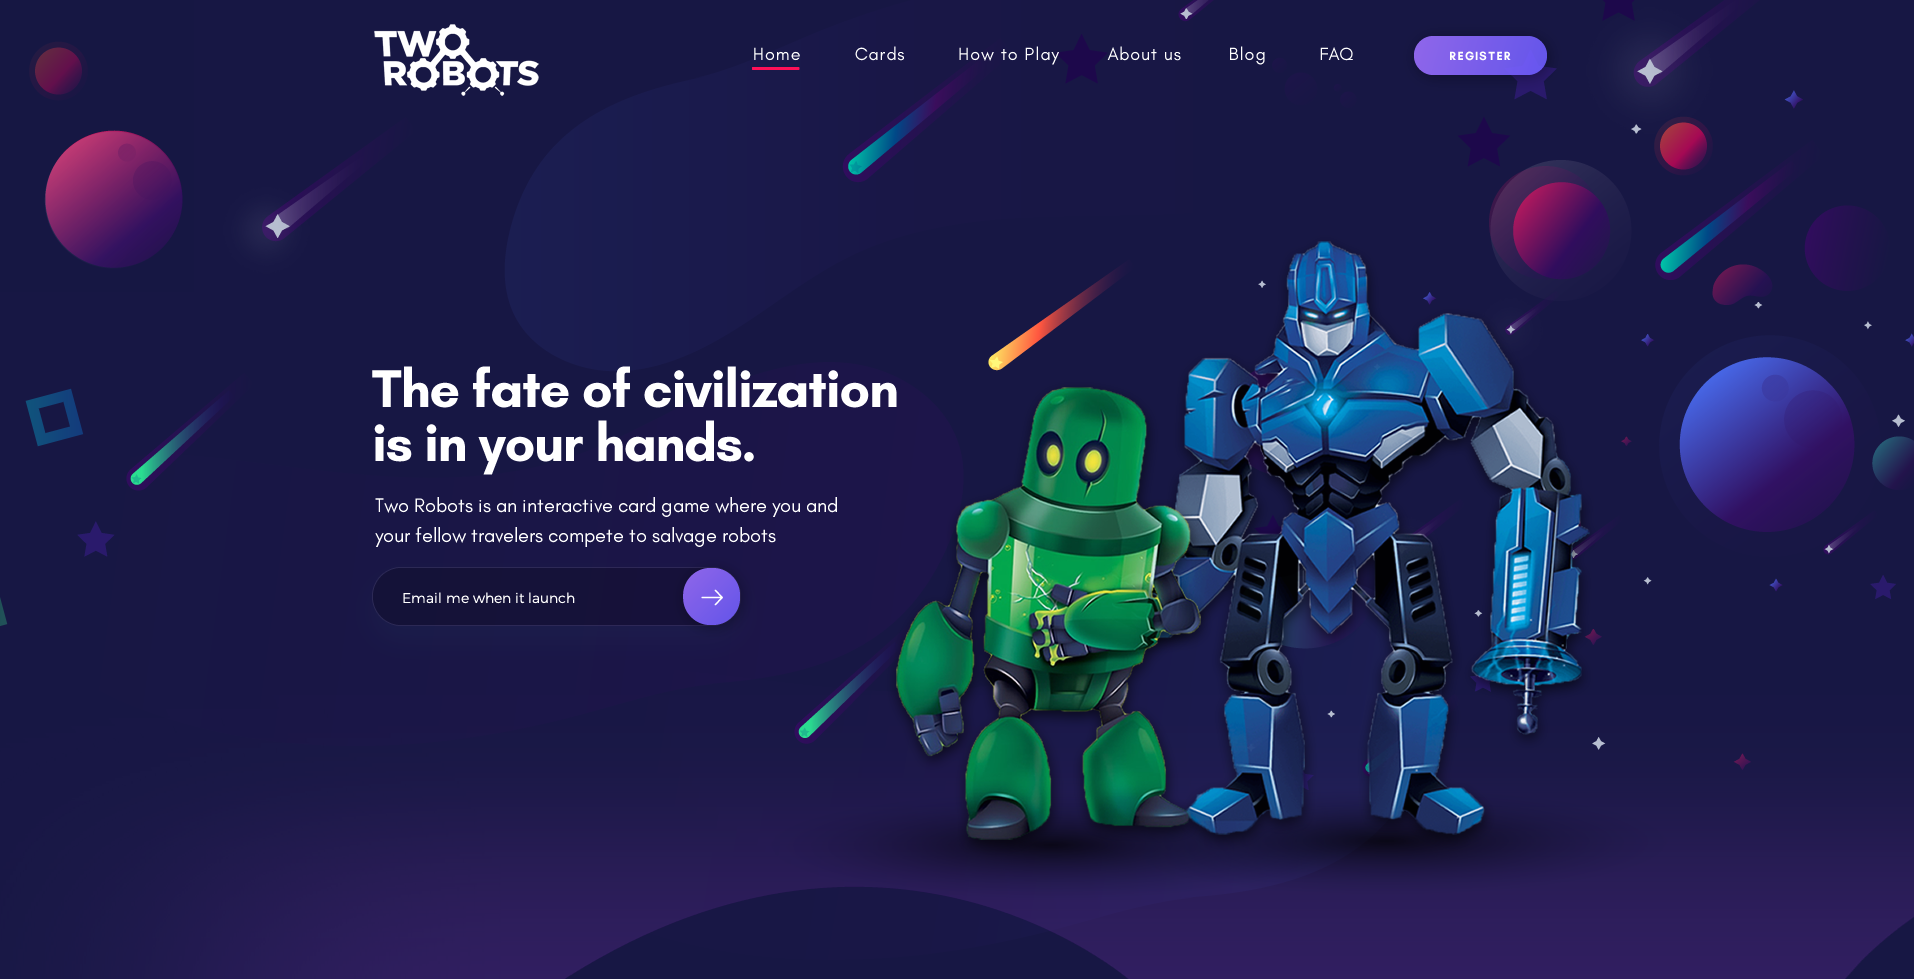 Two Robots landing page